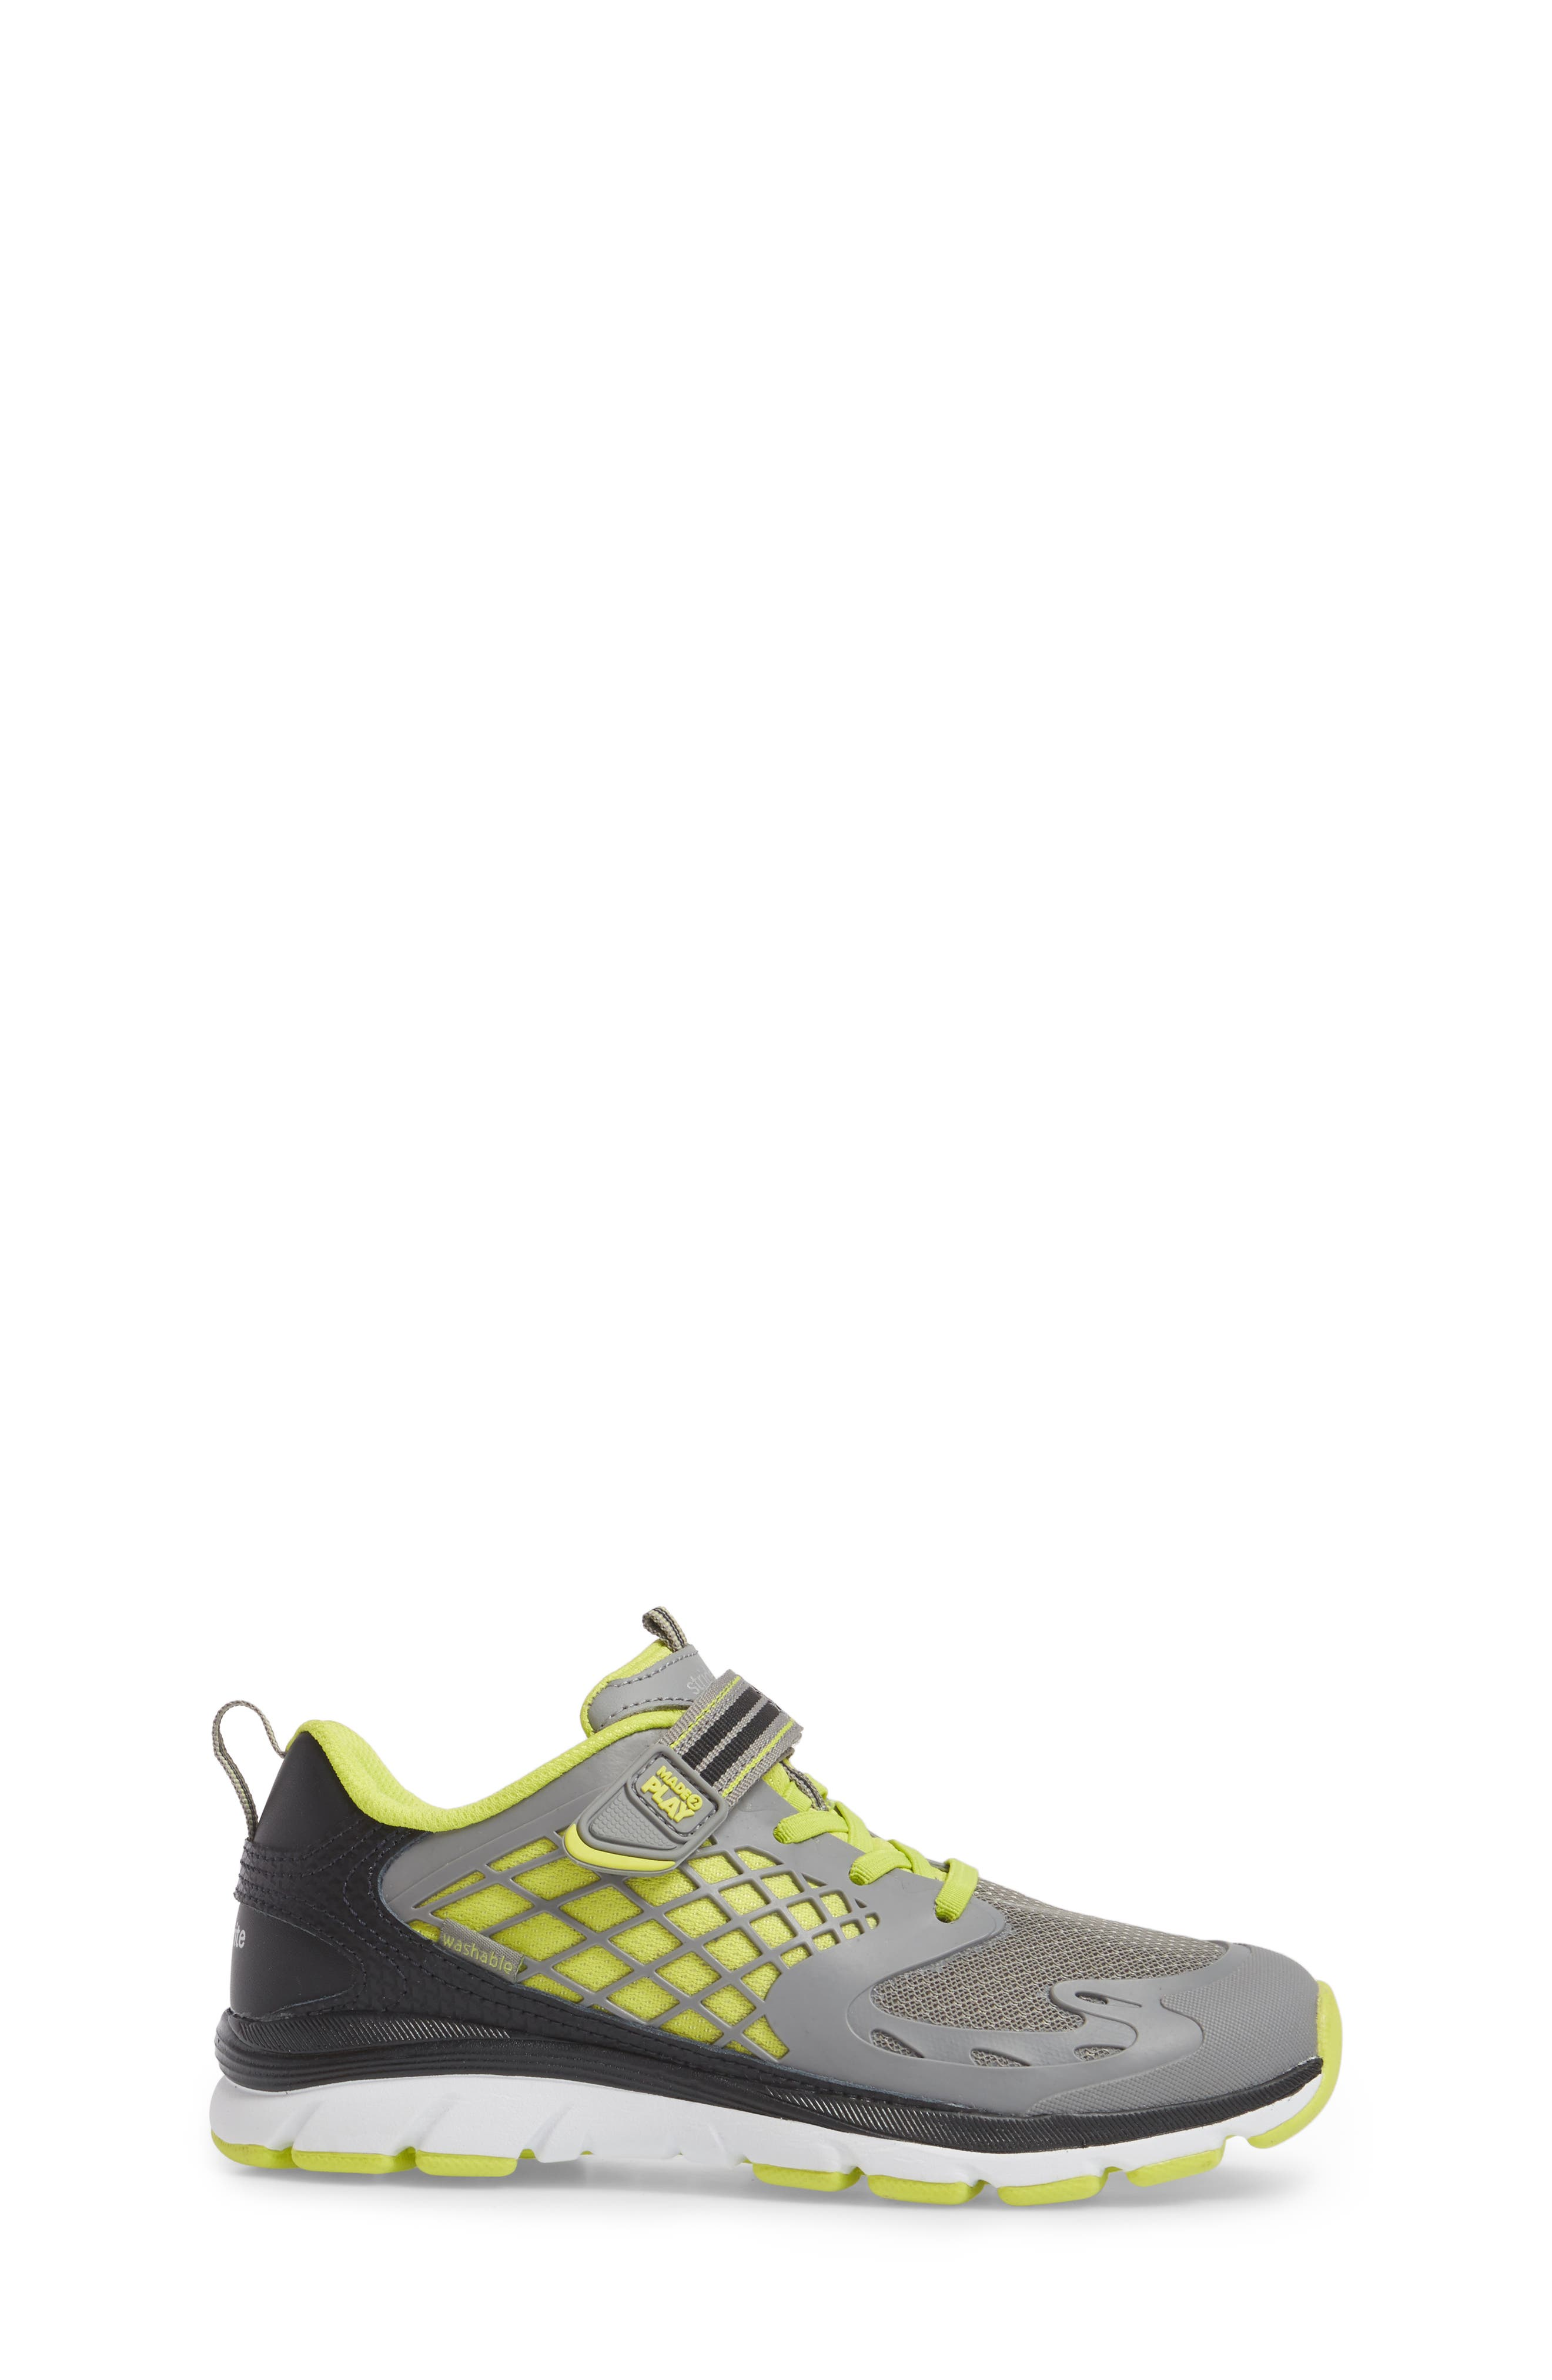 Made 2 Play Breccen Sneaker,                             Alternate thumbnail 3, color,                             Grey/ Lime Leather/ Textile